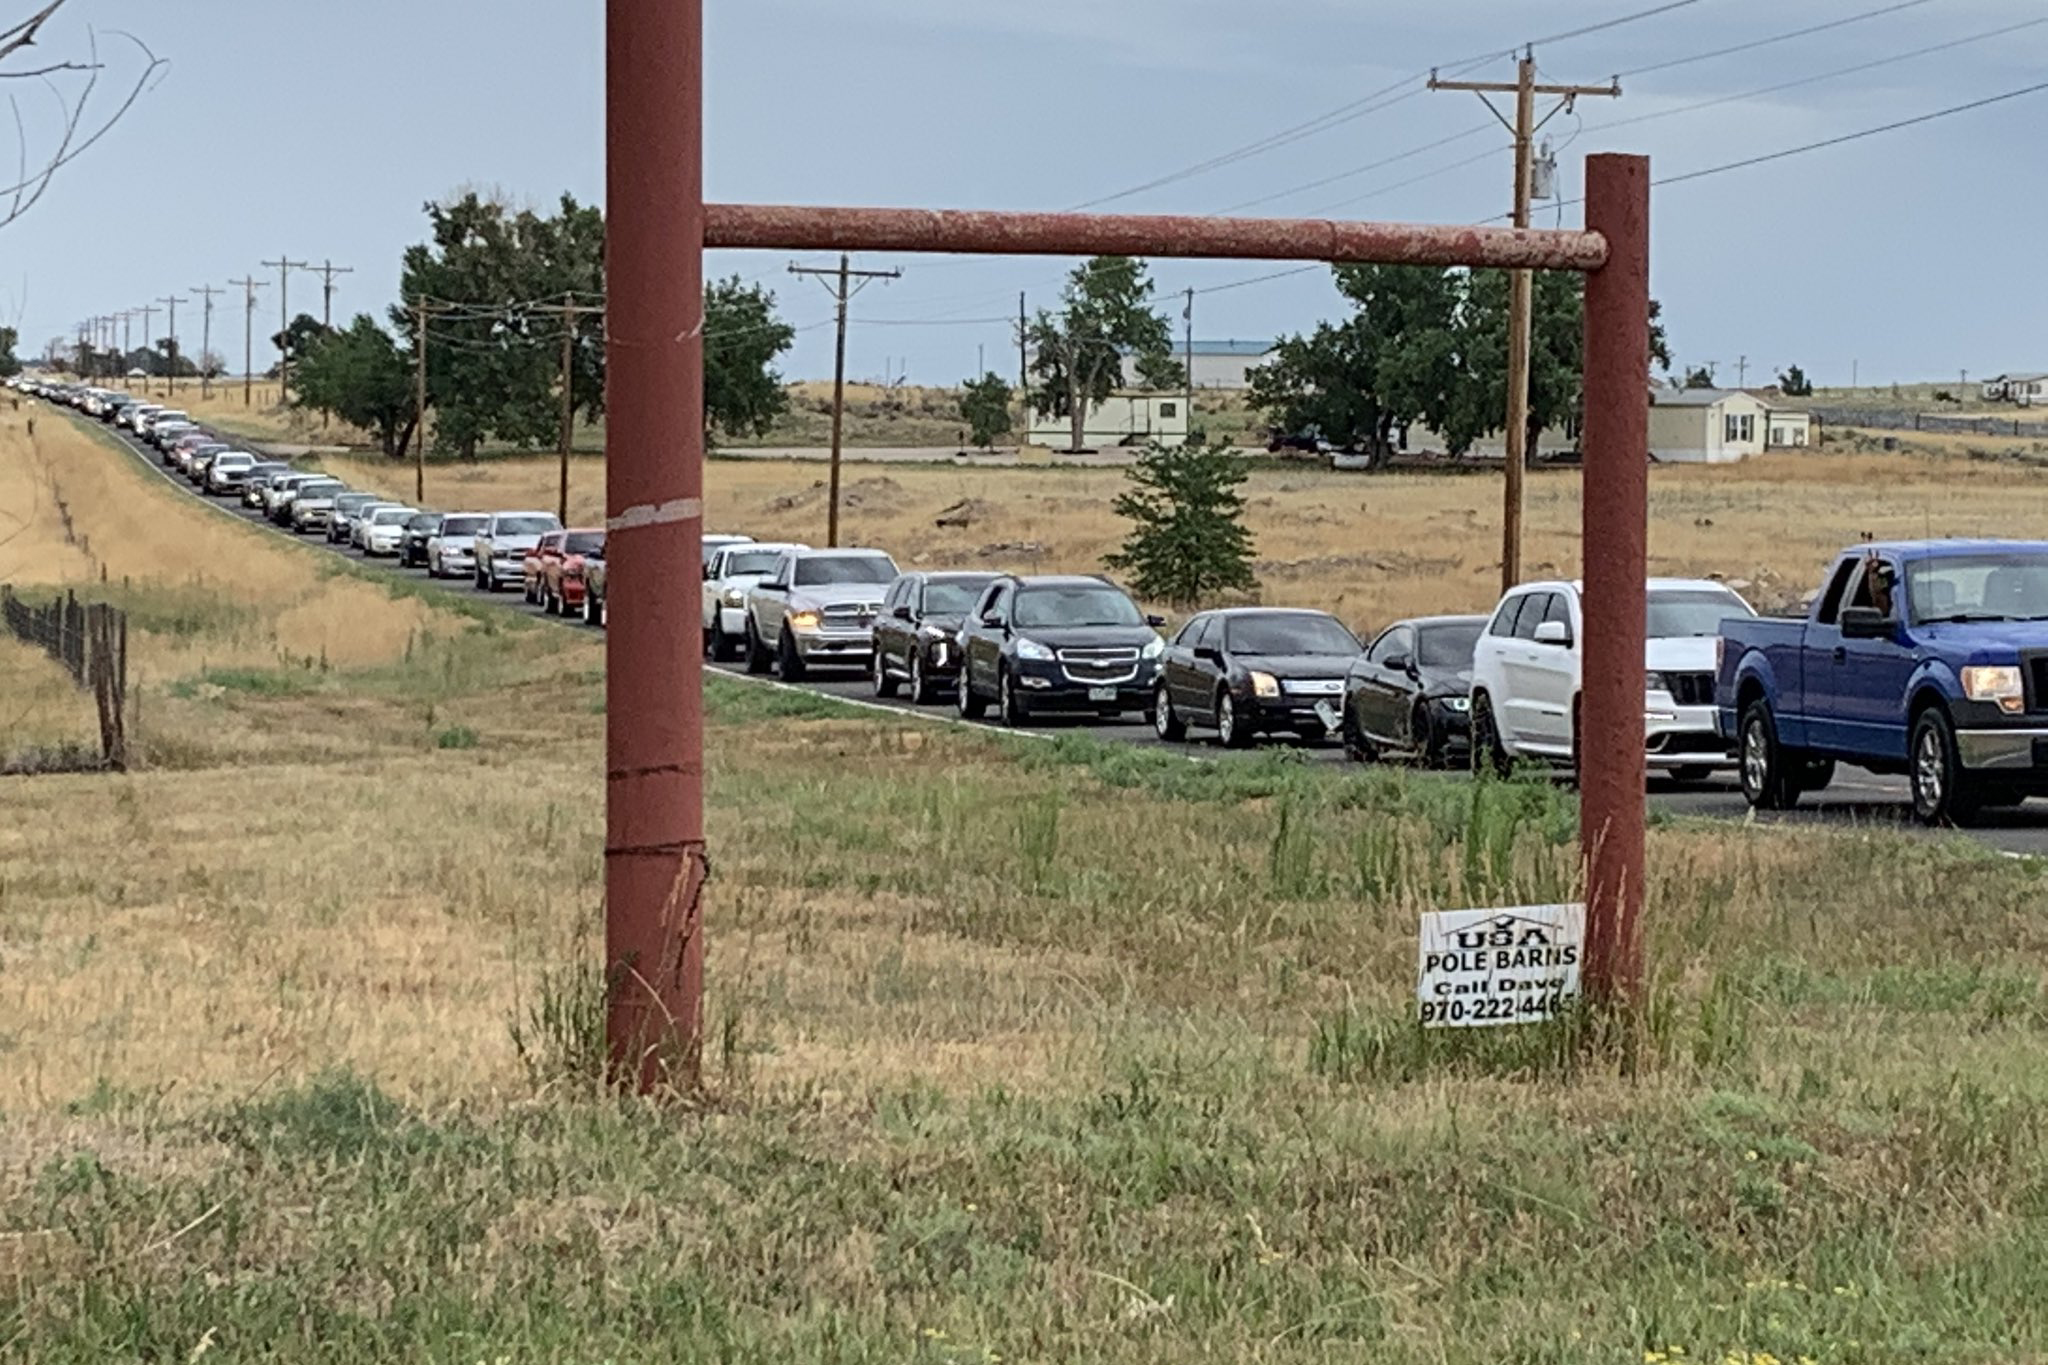 Cars line up for a rodeo and concert event in Weld County that drew thousands before the landowner asked promoters to call it off.